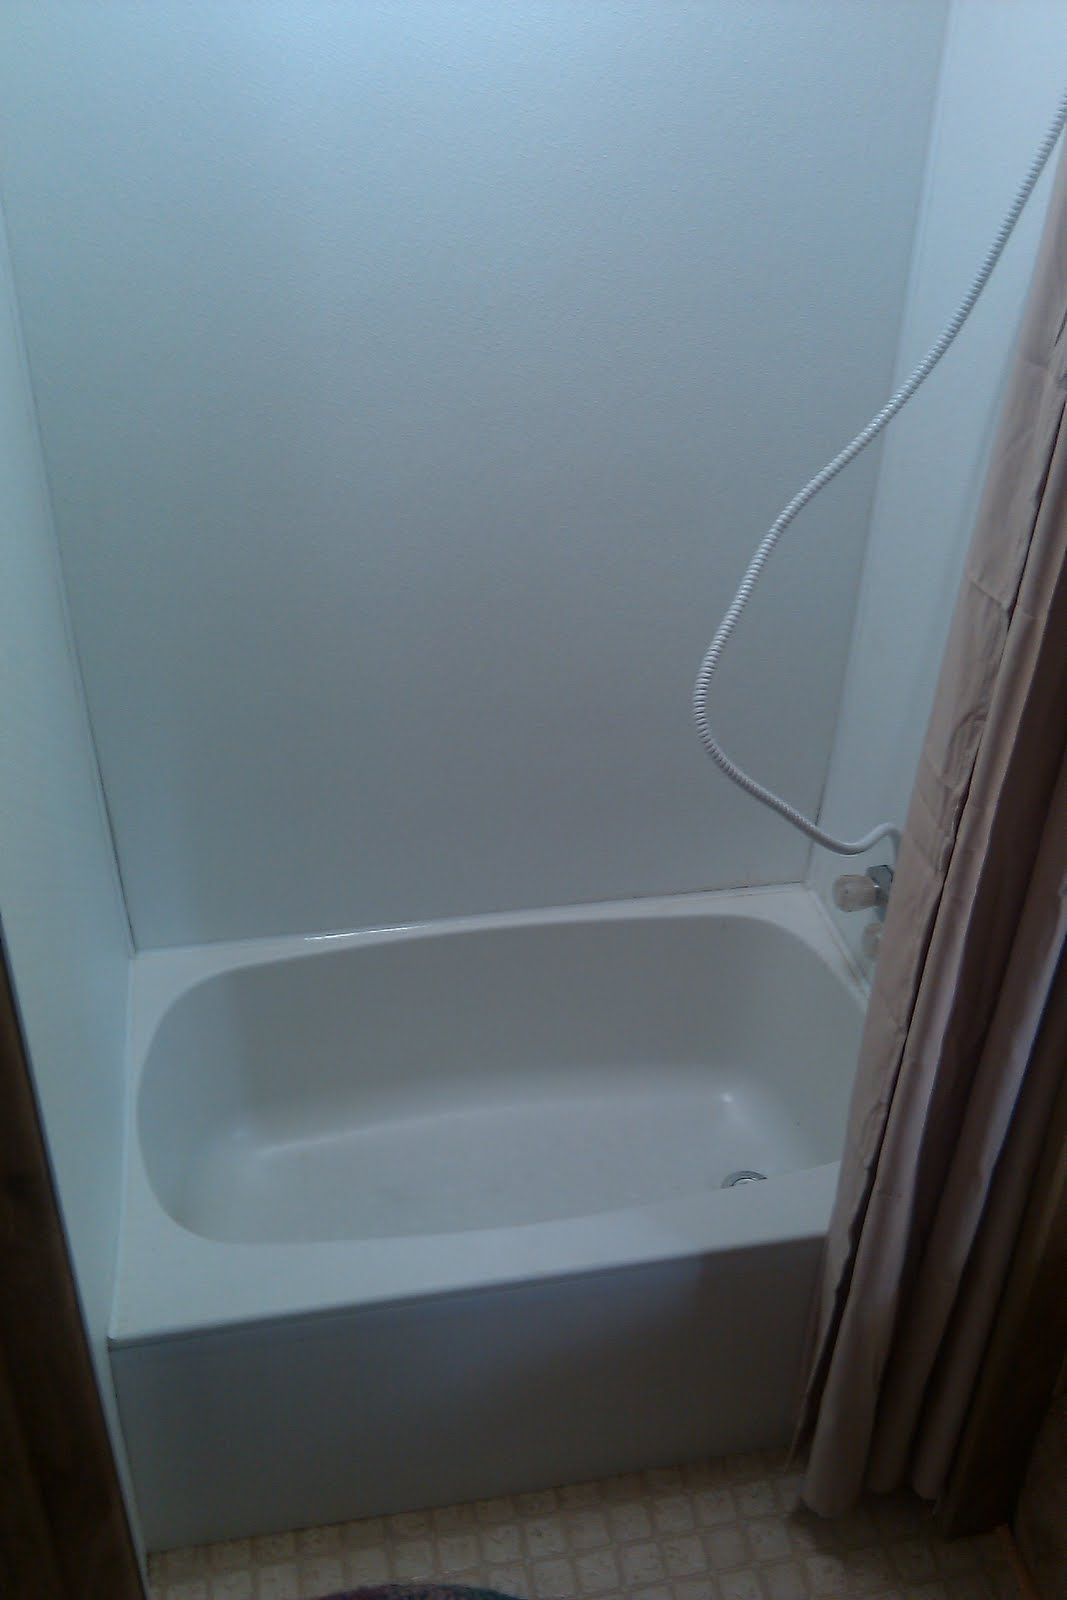 handle shower kits bathtub in chrome rv faucet and p included trim home tub valve danco mobile not